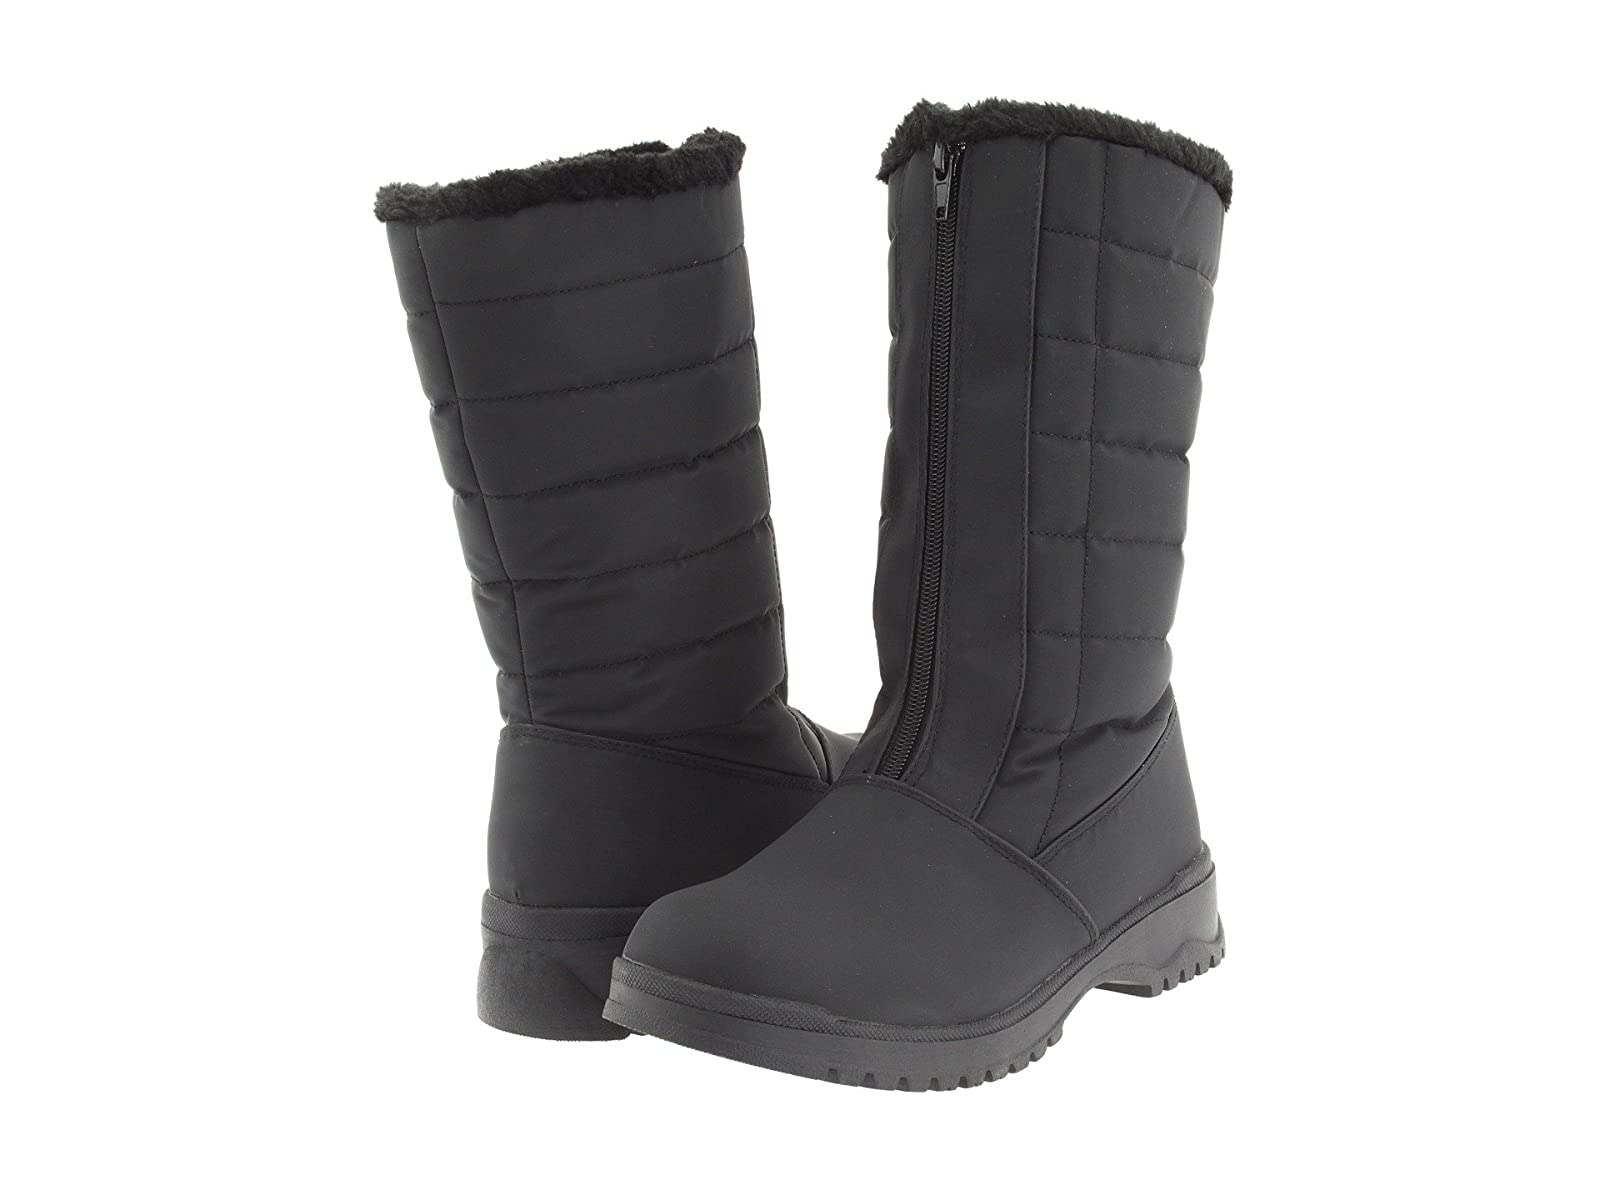 Tundra Boots ChristyEconomical and quality shoes